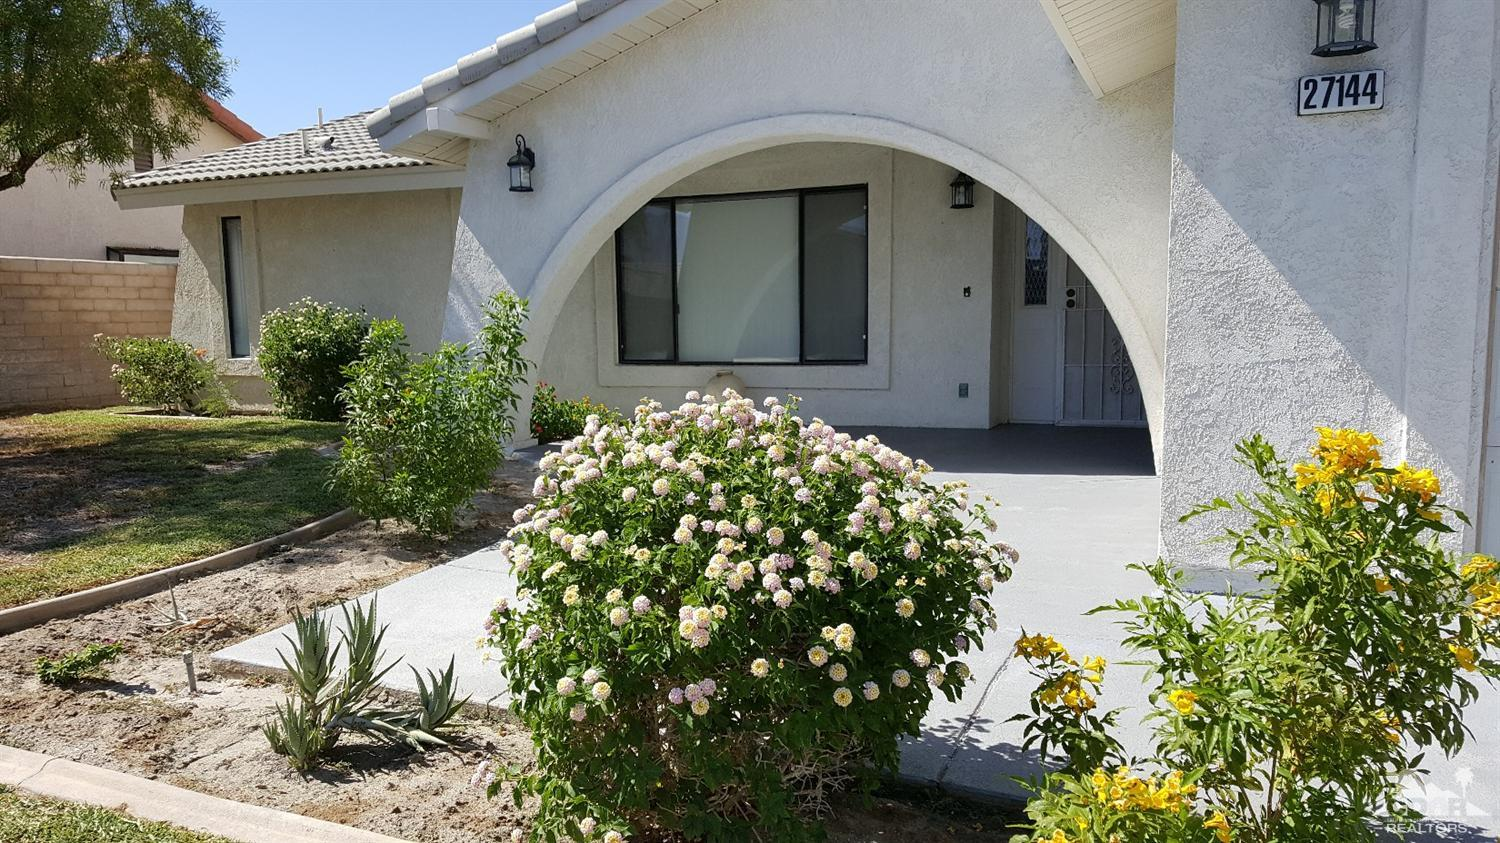 27144 Shadowcrest Ln, Cathedral City, CA 92234